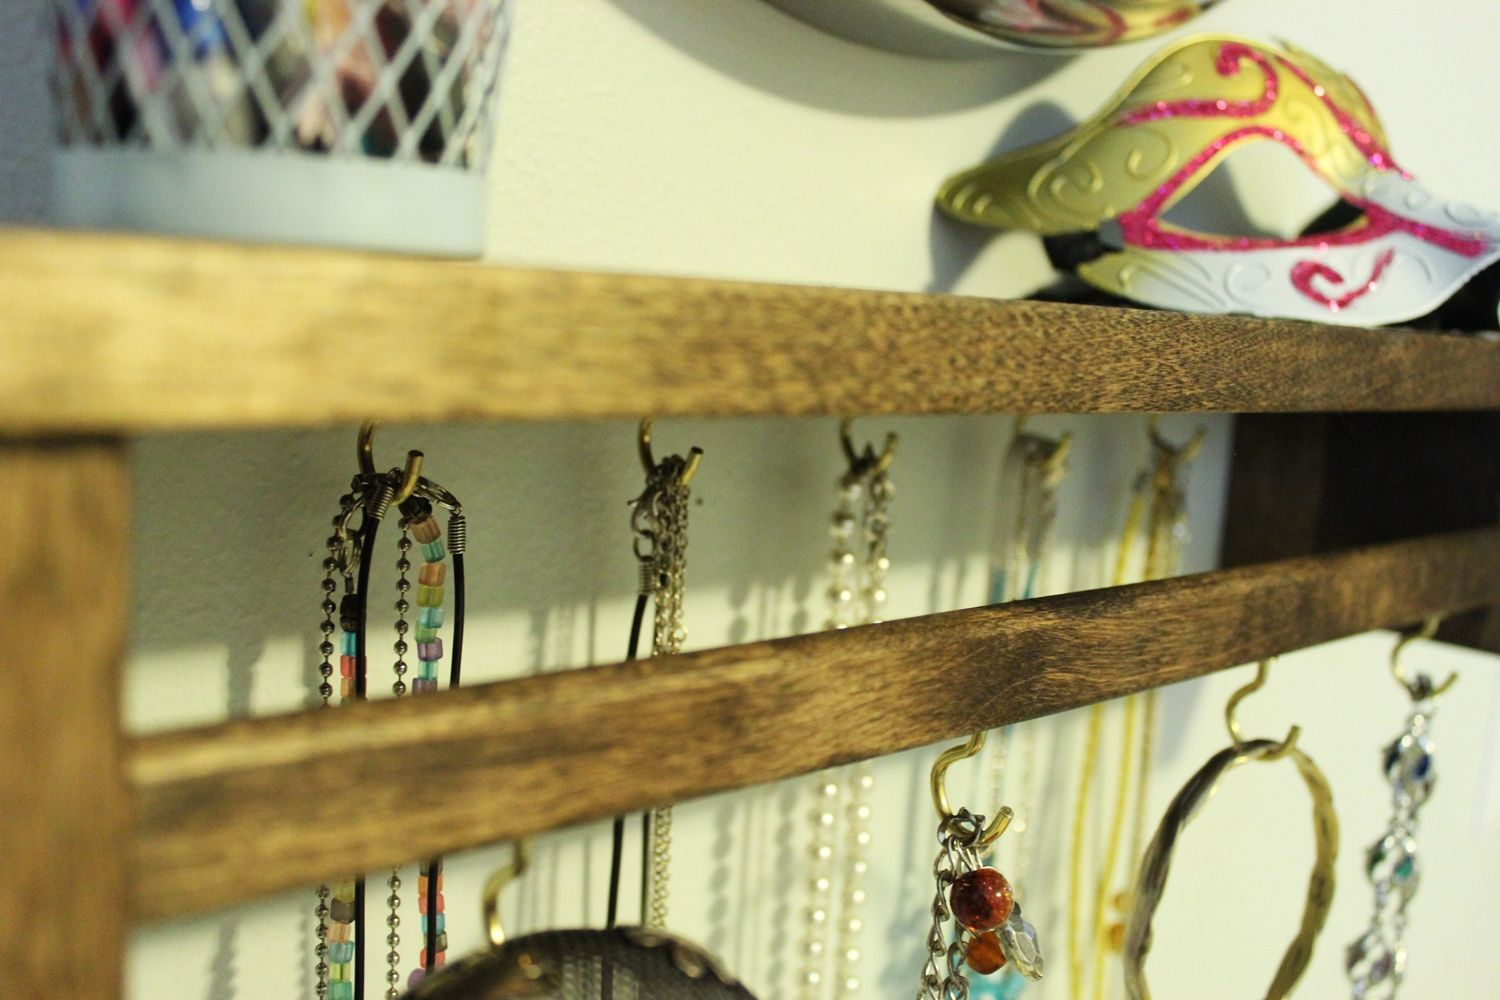 DIY Jewelry Holder out of Spice Rack - stained wood